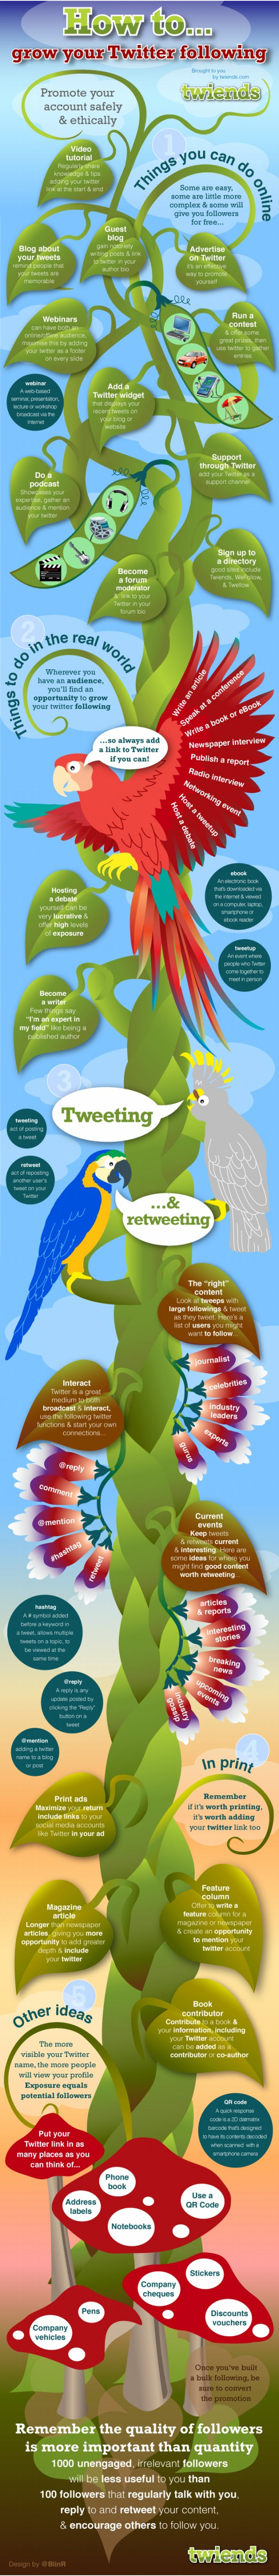 40 Ways to Increase your Twitter Followers - Infographic | Jeffbullas's Blog